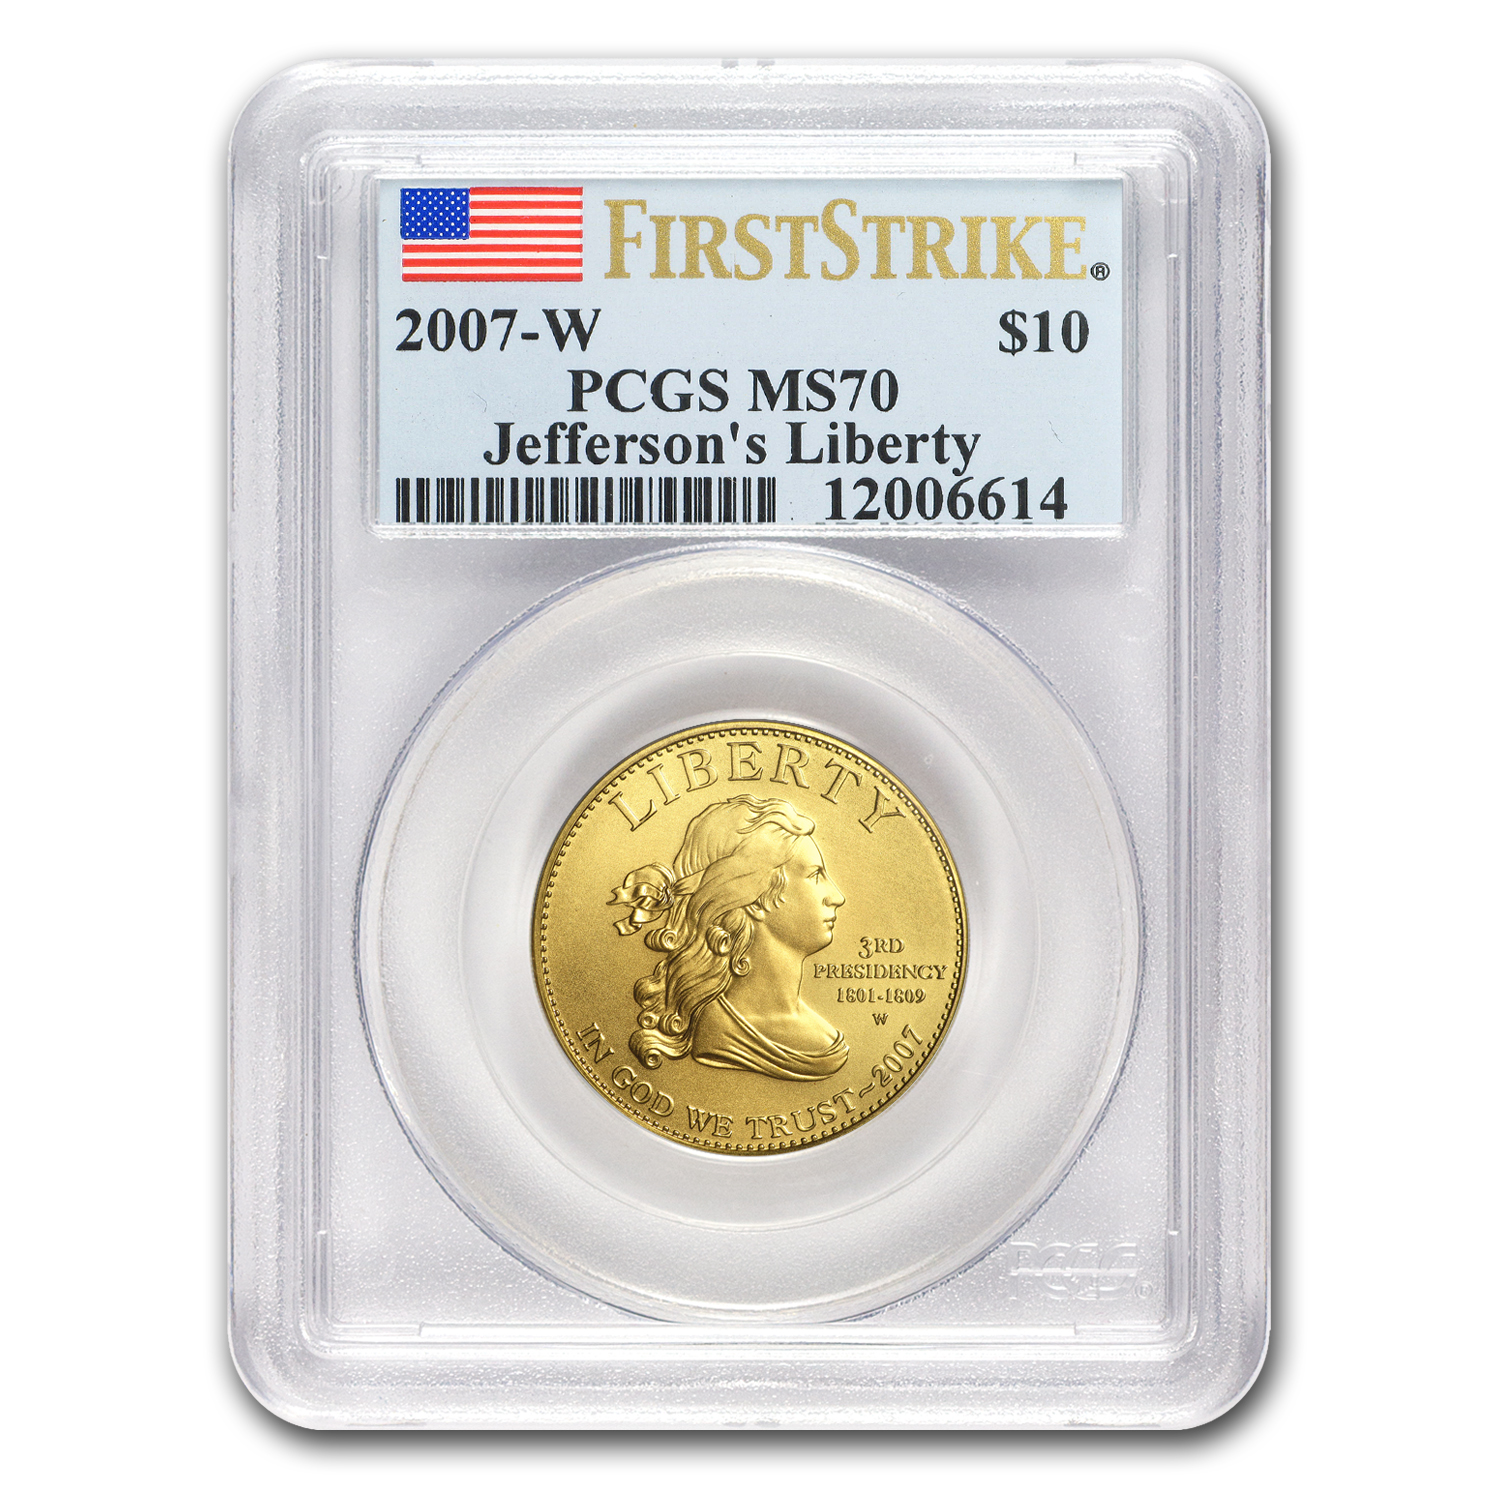 2007-W 1/2 oz Gold Jefferson's Liberty MS-70 PCGS (First Strike)